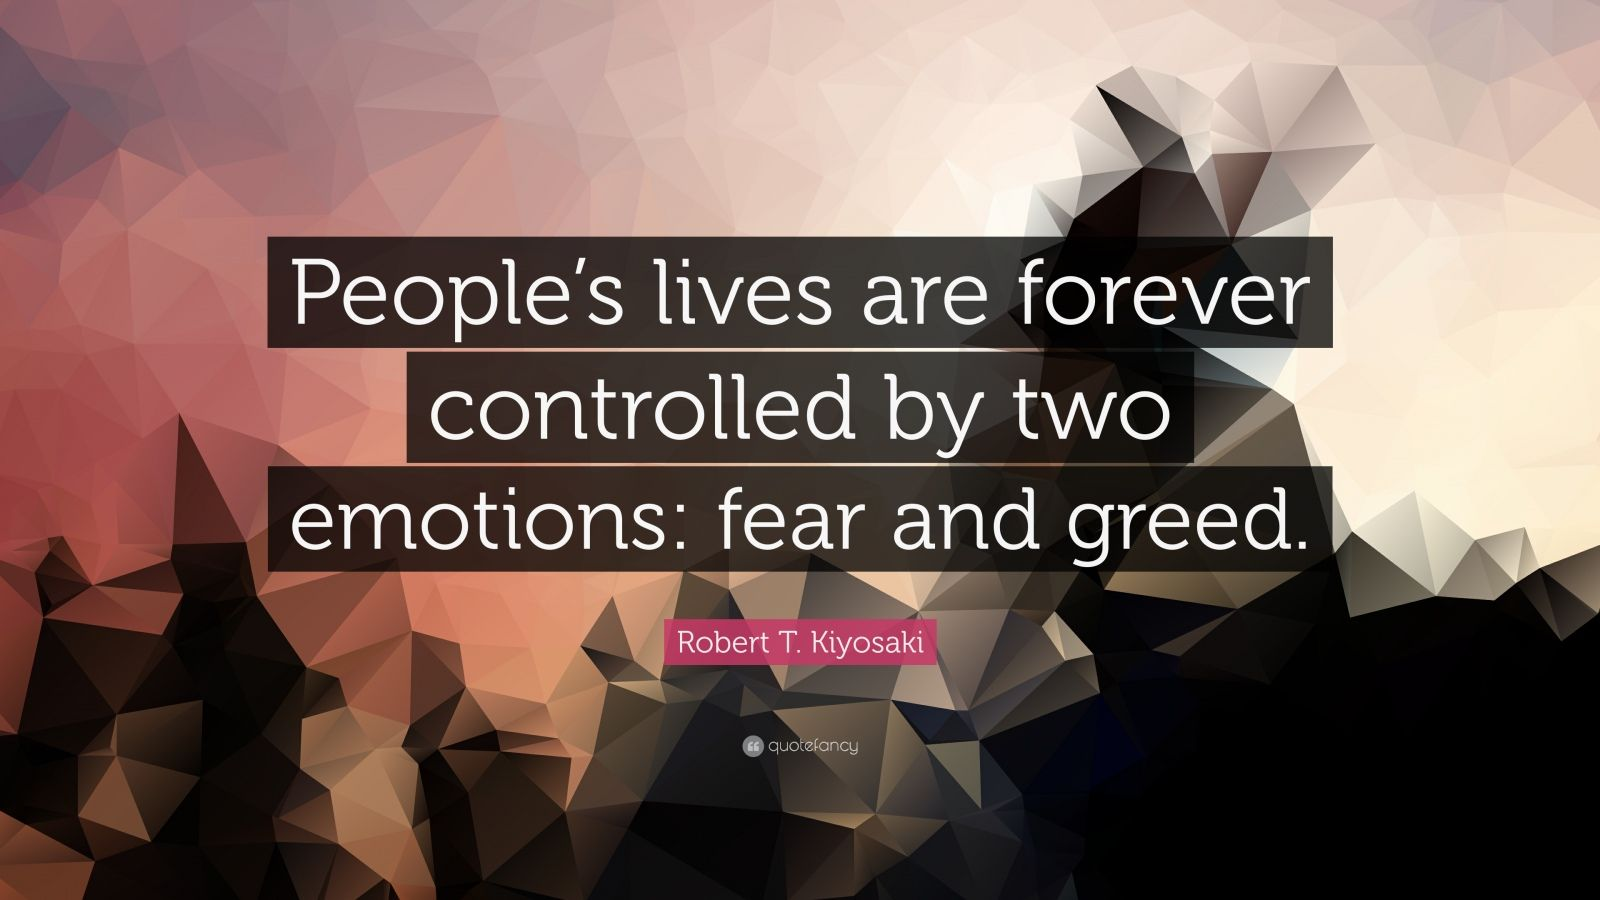 Quotes About Greed People S Lives Are Forever Controlled By Two Emotions Fear And Greed Robert T Kiyo Flirting Quotes Funny Joel Osteen Quotes Flirting